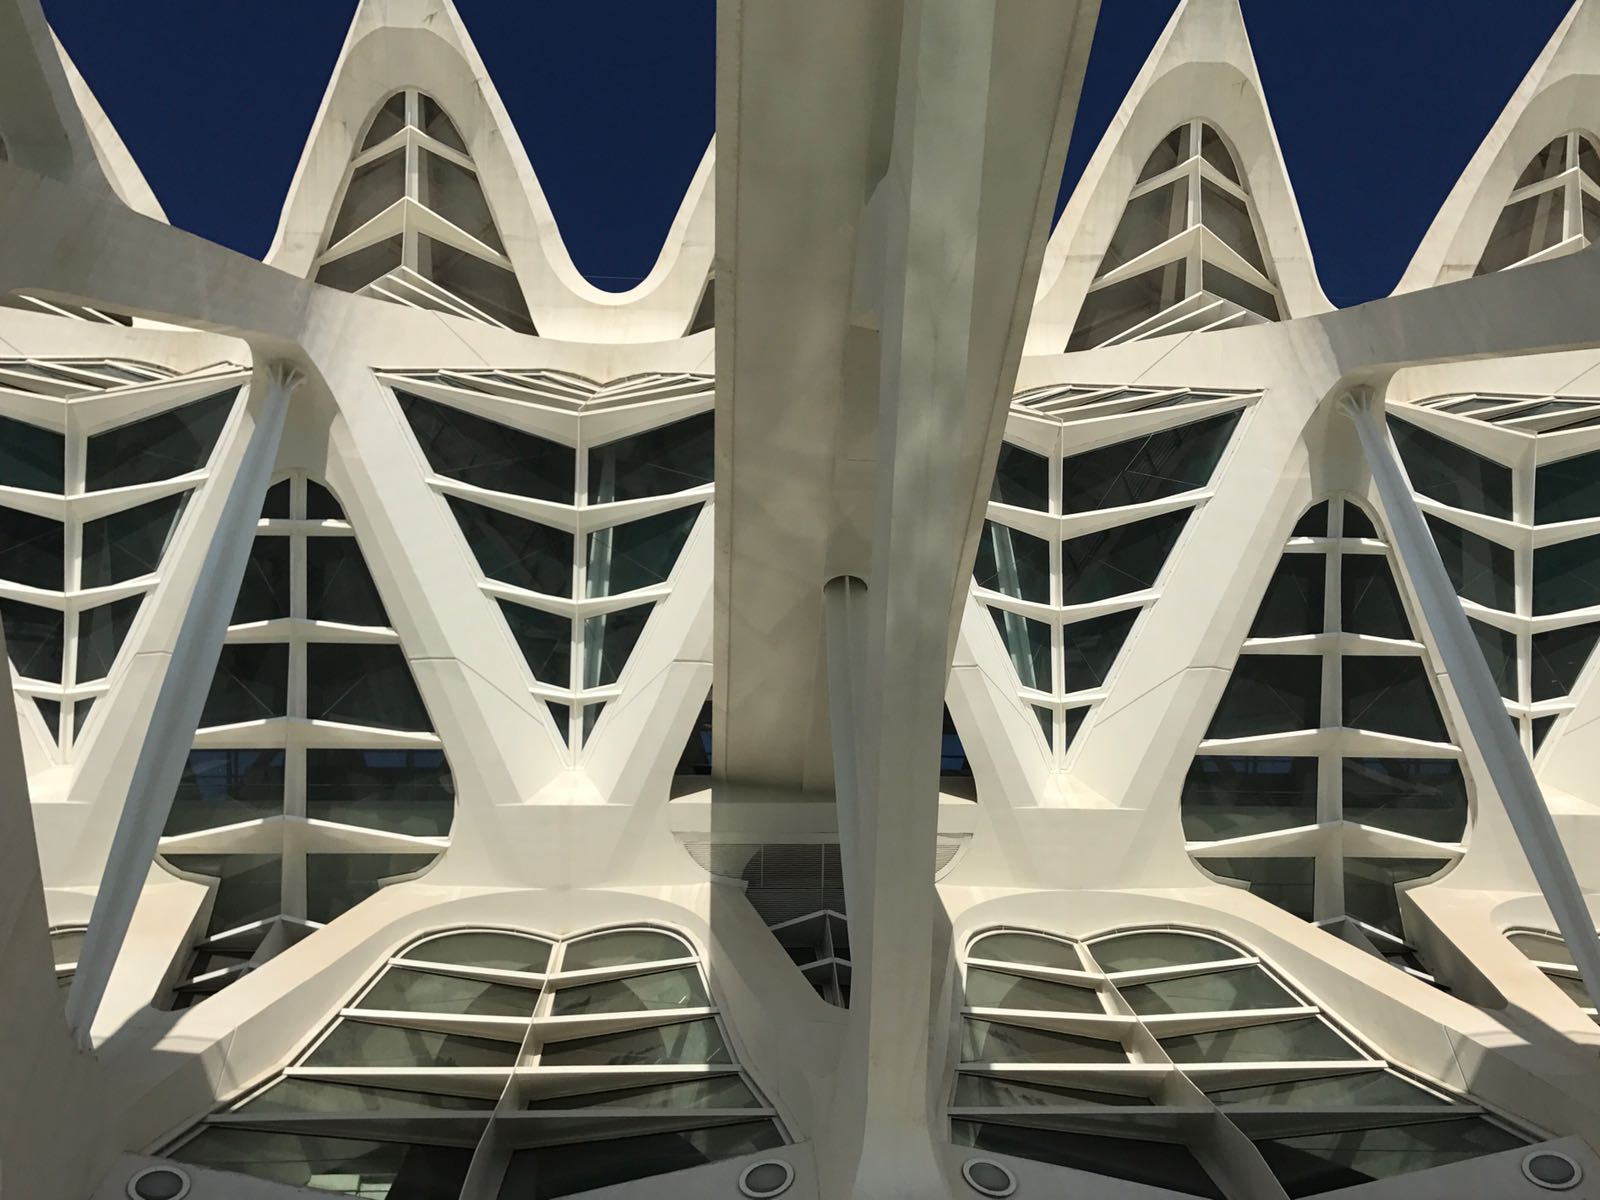 White spikes of the Valencia science museum roof from below with blue sky behind